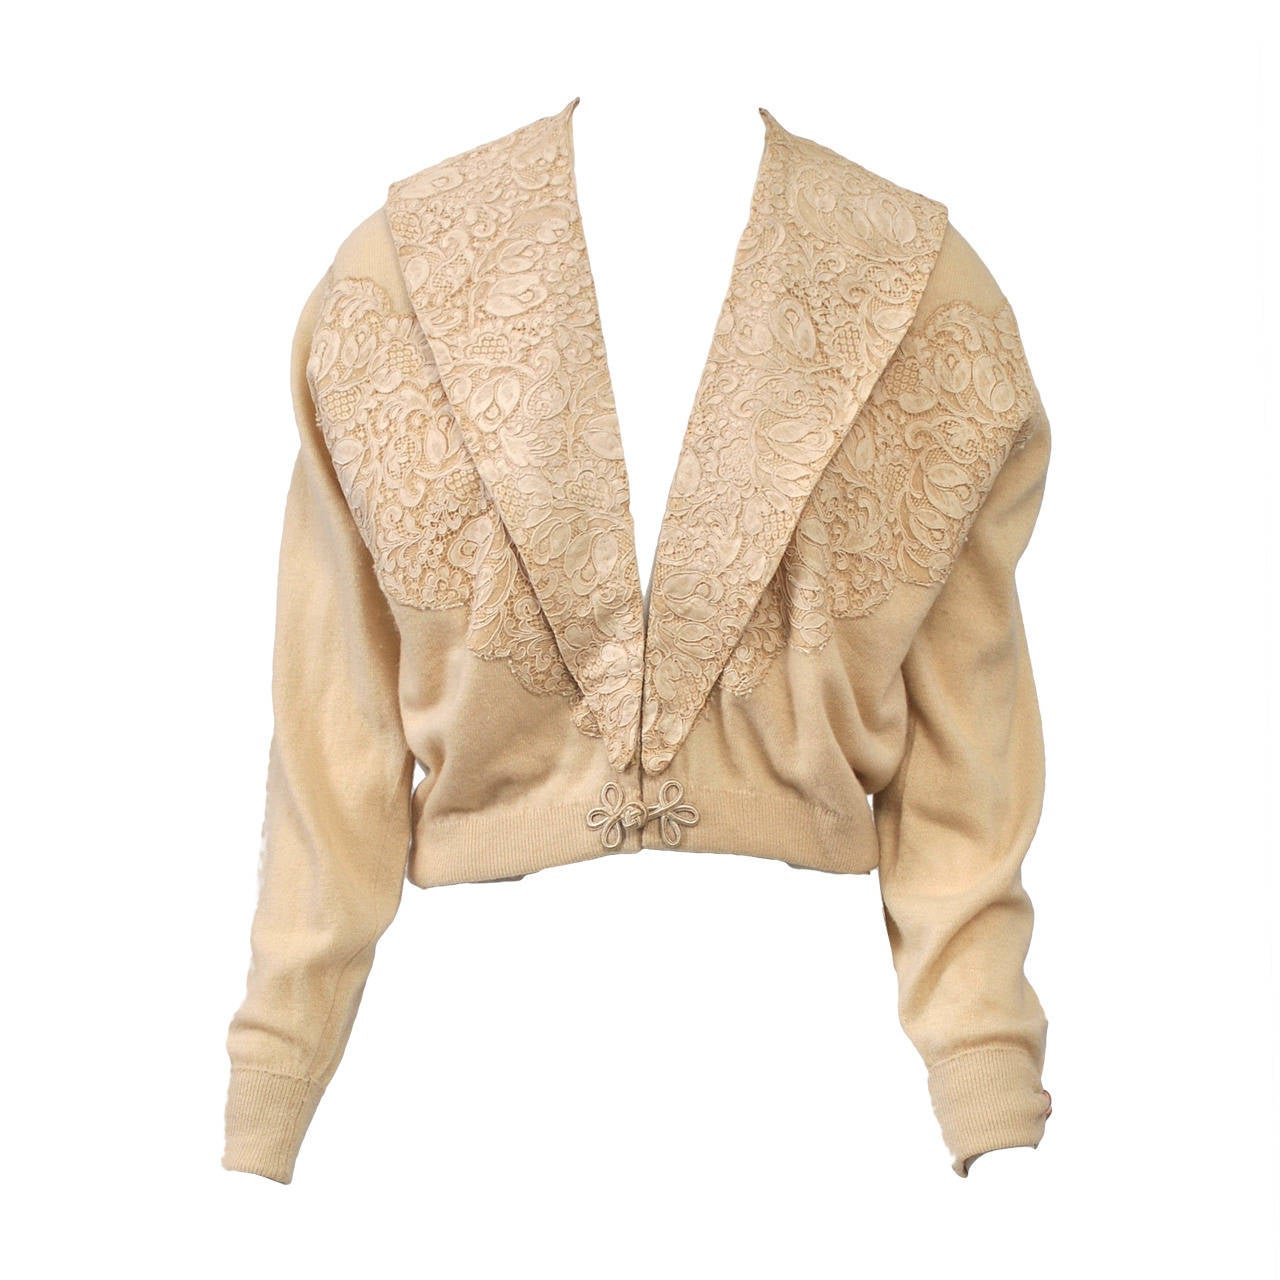 Beige Cashmere Cardigan with Lace For Sale at 1stdibs